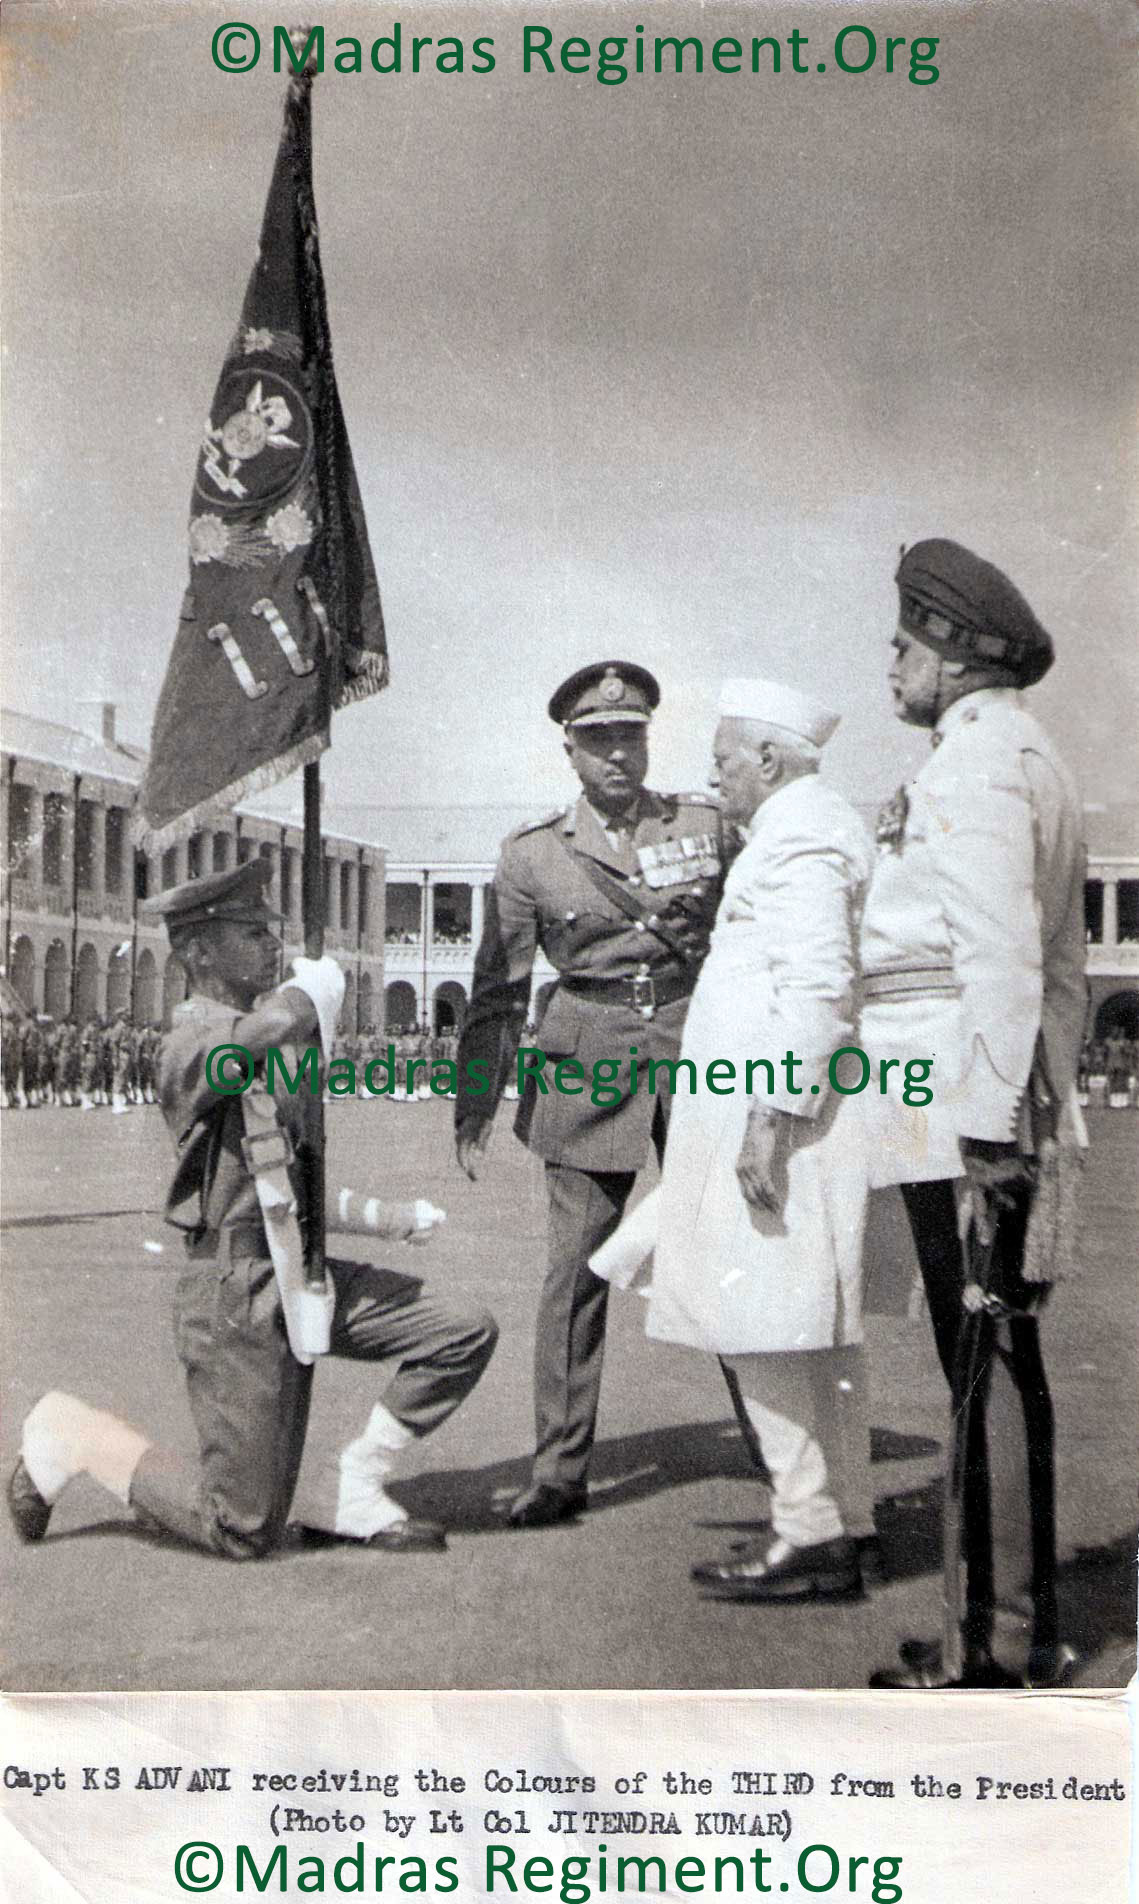 Capt K. S. Advani receiving the Colours of the THIRD from the President (Photo by Lt. Col. JITENDRA KUMAR)